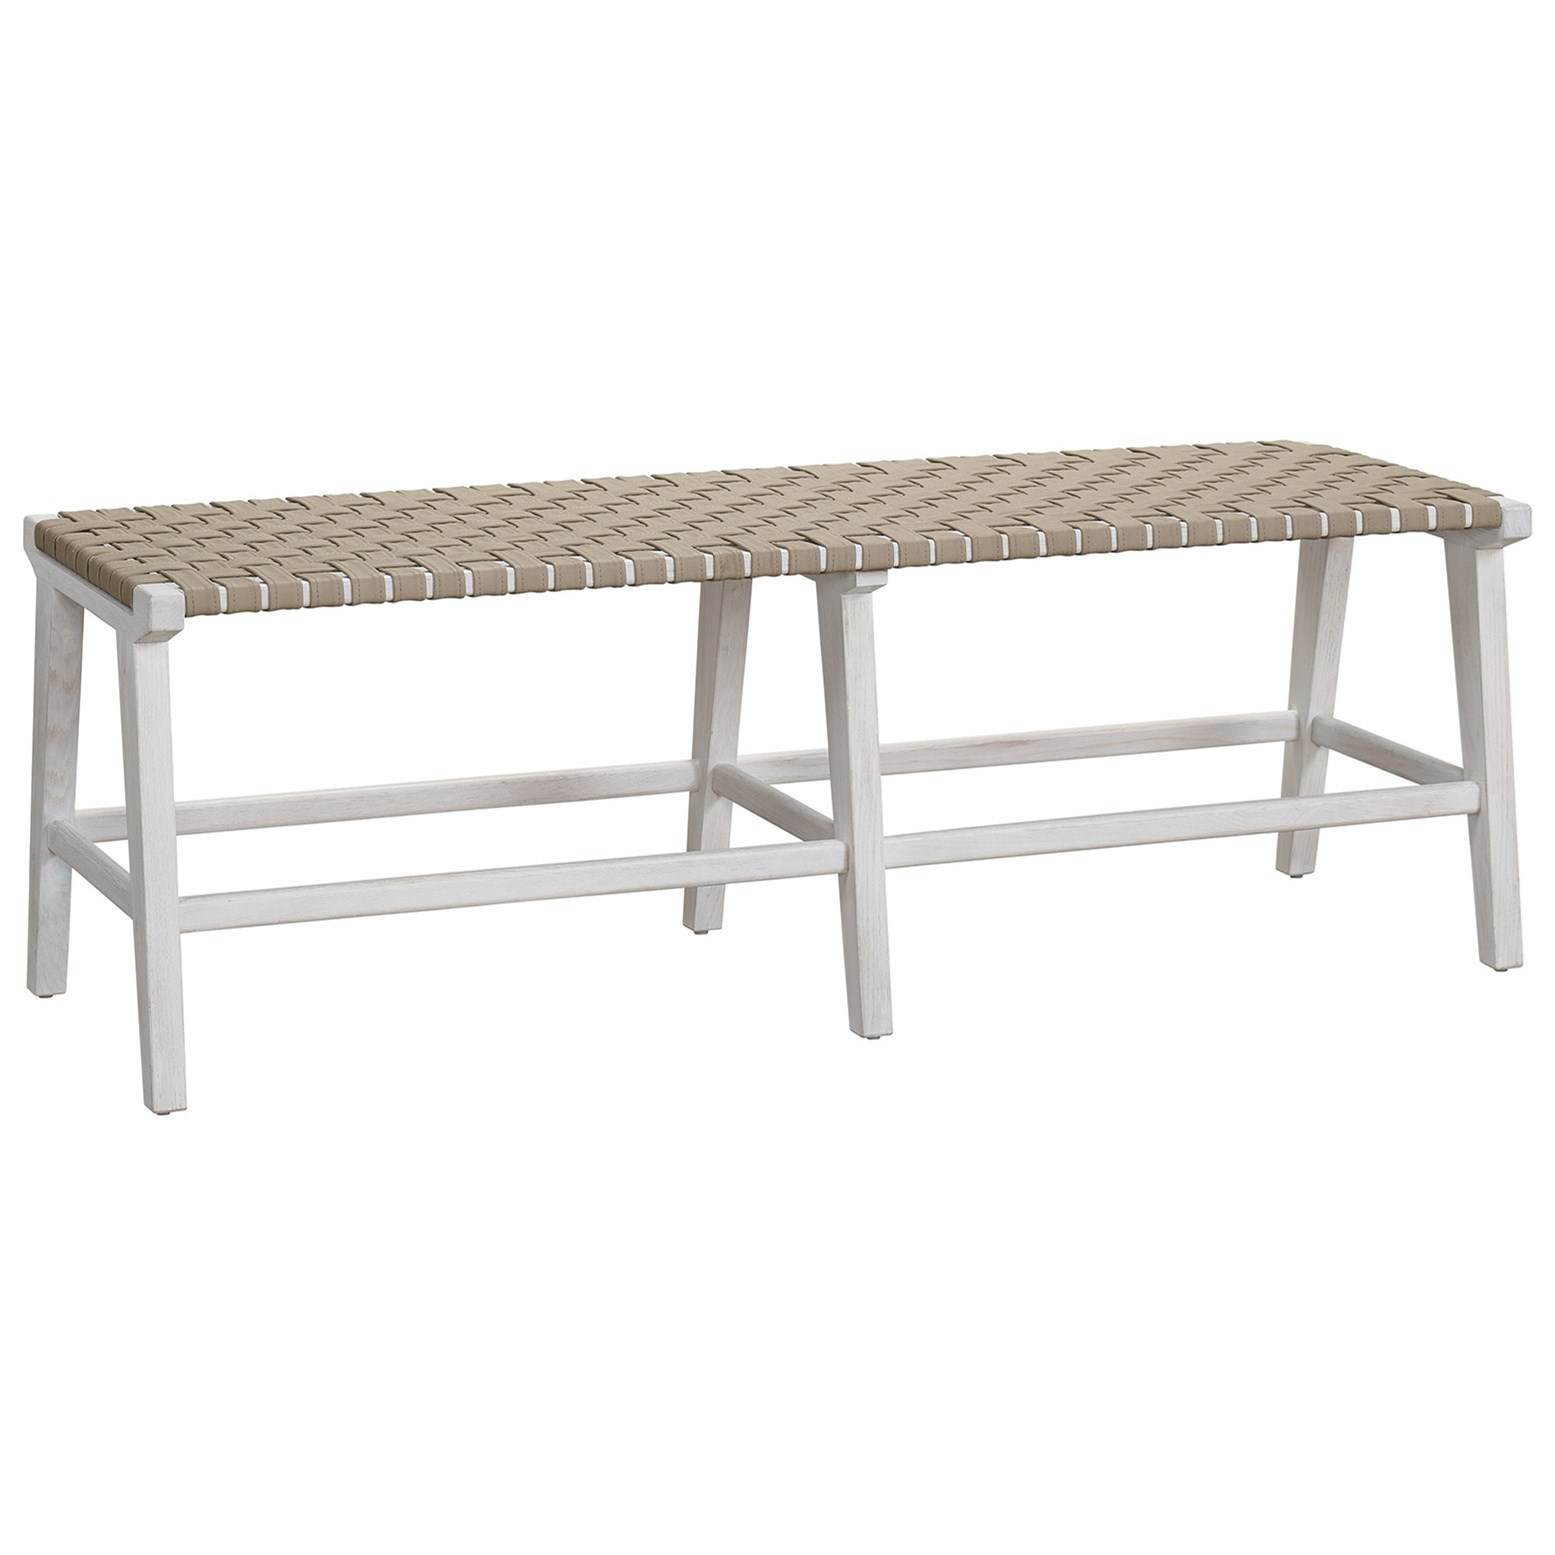 Modern Farmhouse Harlyn Bench by Universal at Baer's Furniture